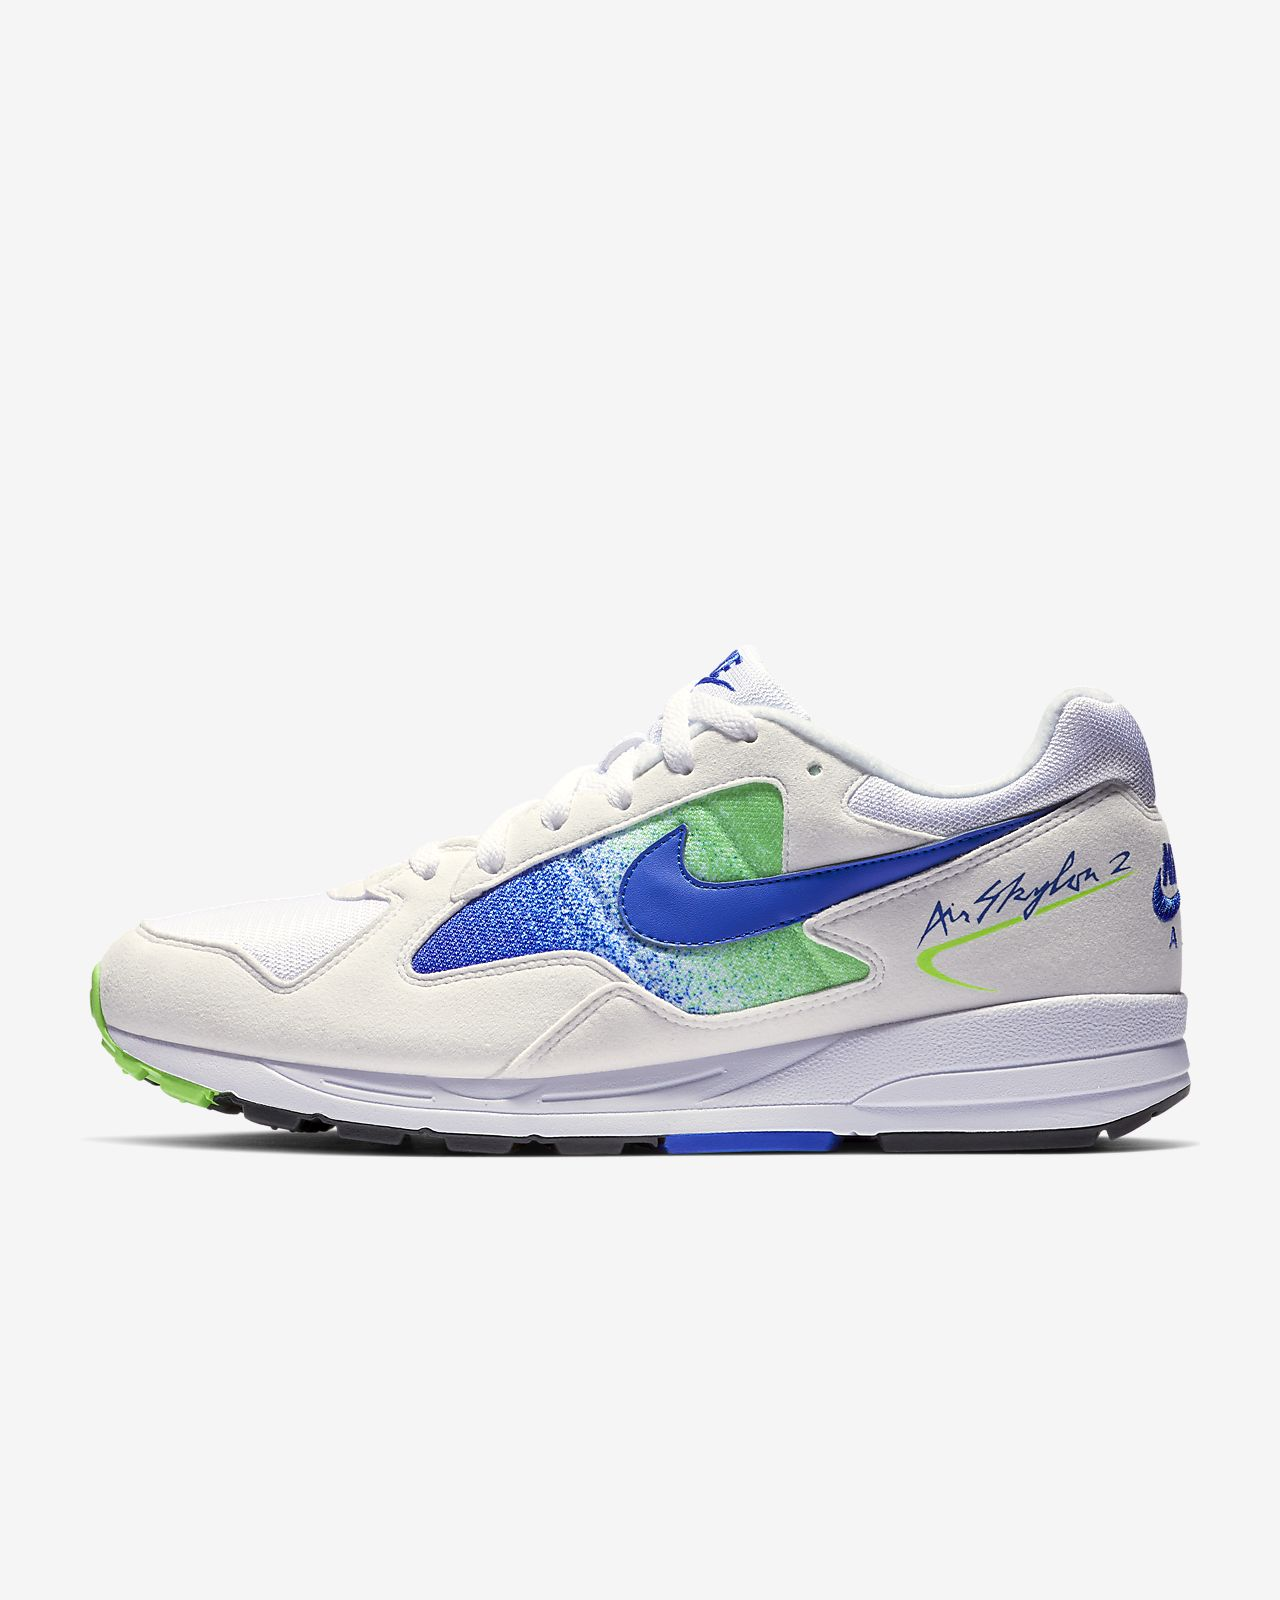 a000e6b6a9 Nike Air Skylon II Men's Shoe. Nike.com